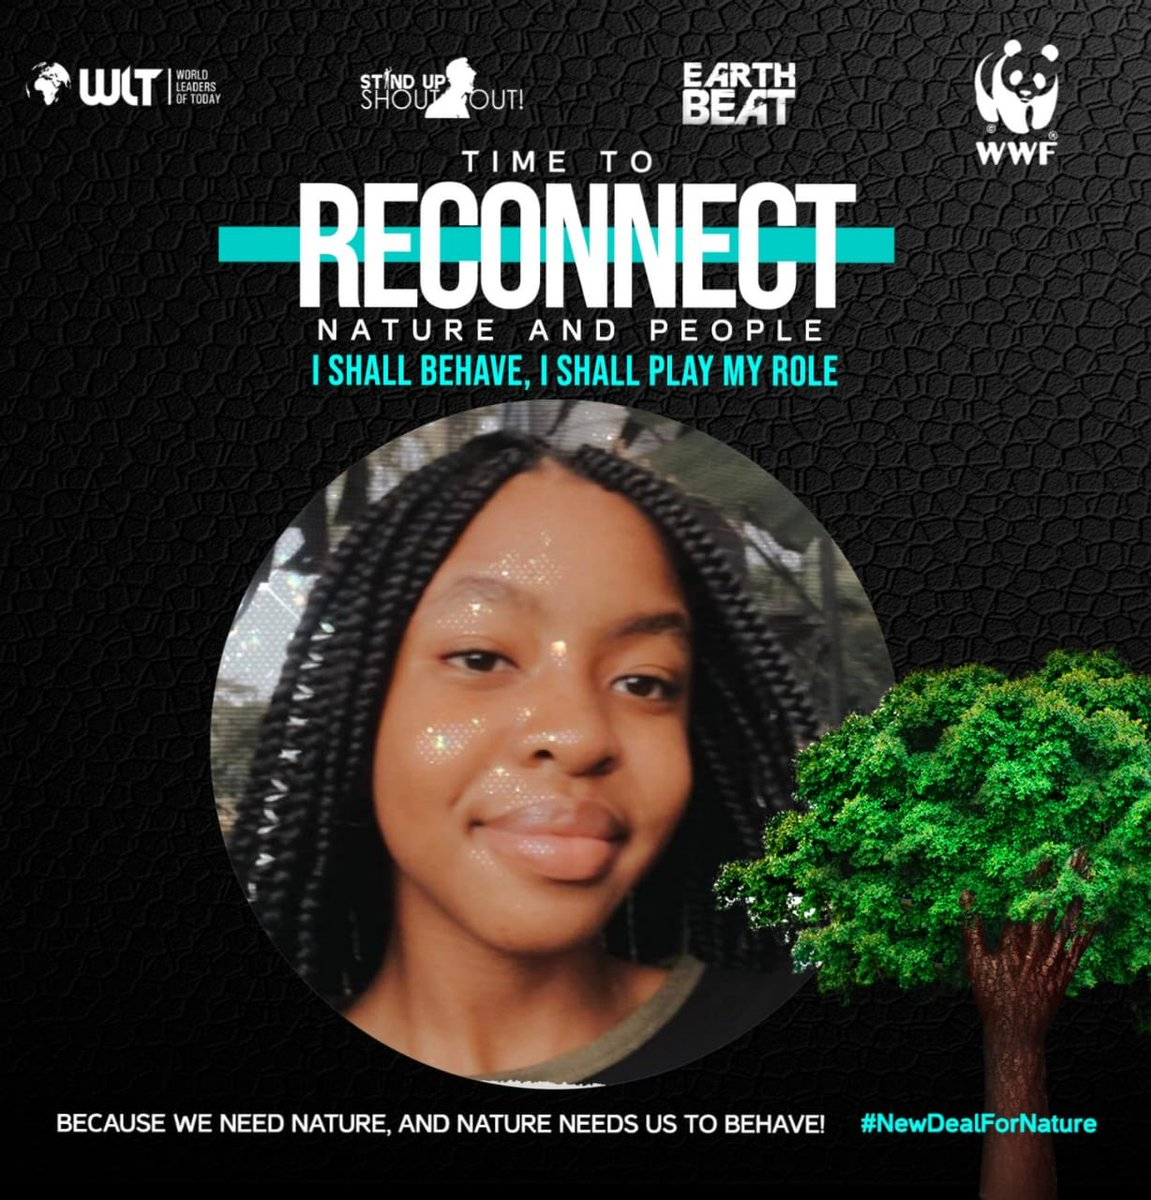 #DealForNature #ReconnectWithNature #SLAInnovationChallenges2020 #UbuntuNature @SUSOyouth  @MrPmoll https://t.co/iY9B8hKpvD